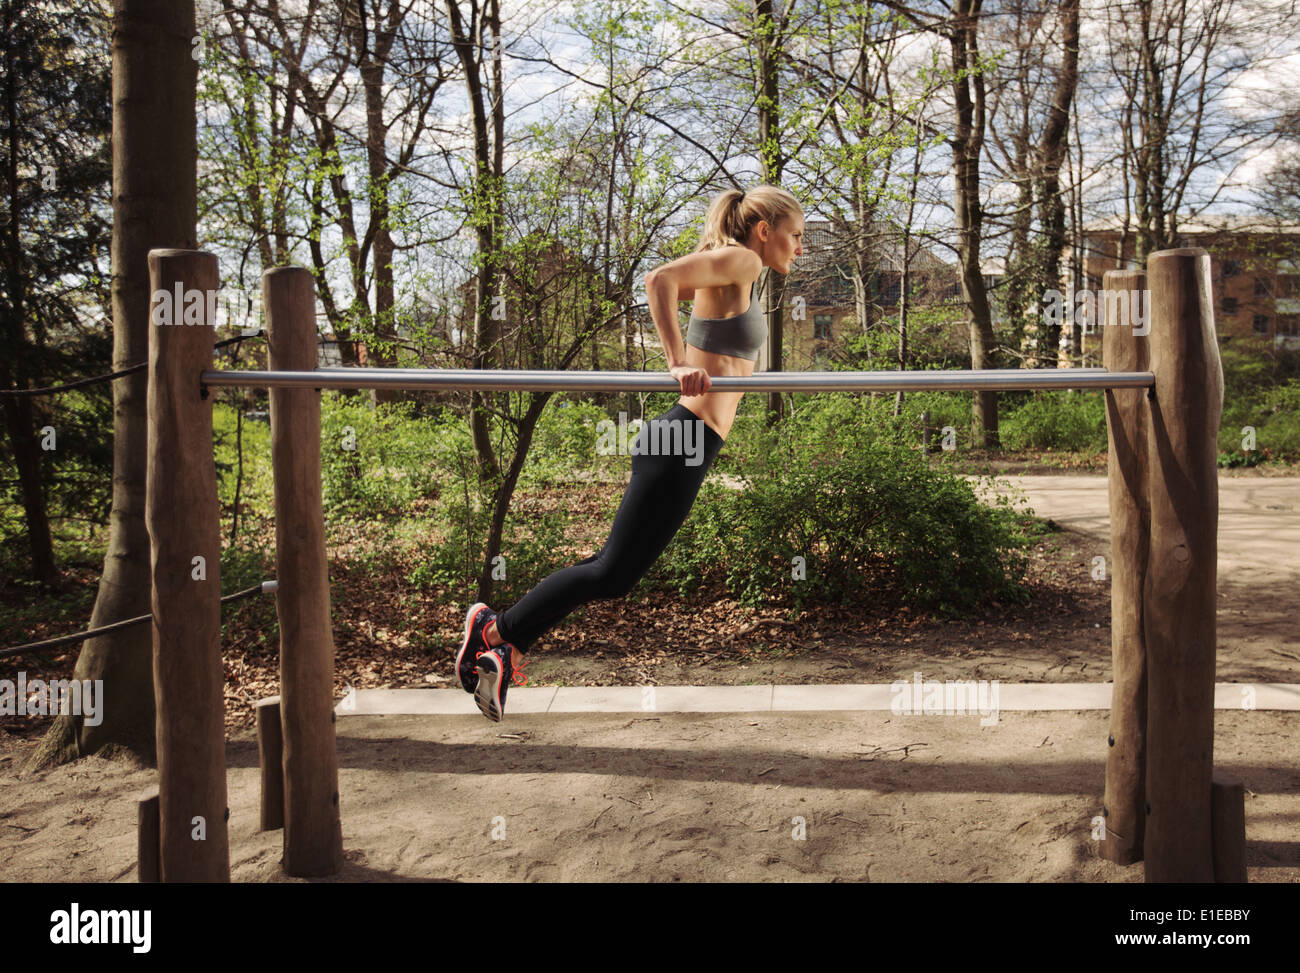 Strong and physically fit young woman doing triceps dips on parallel bars at park. Caucasian fitness female exercising outdoors. - Stock Image